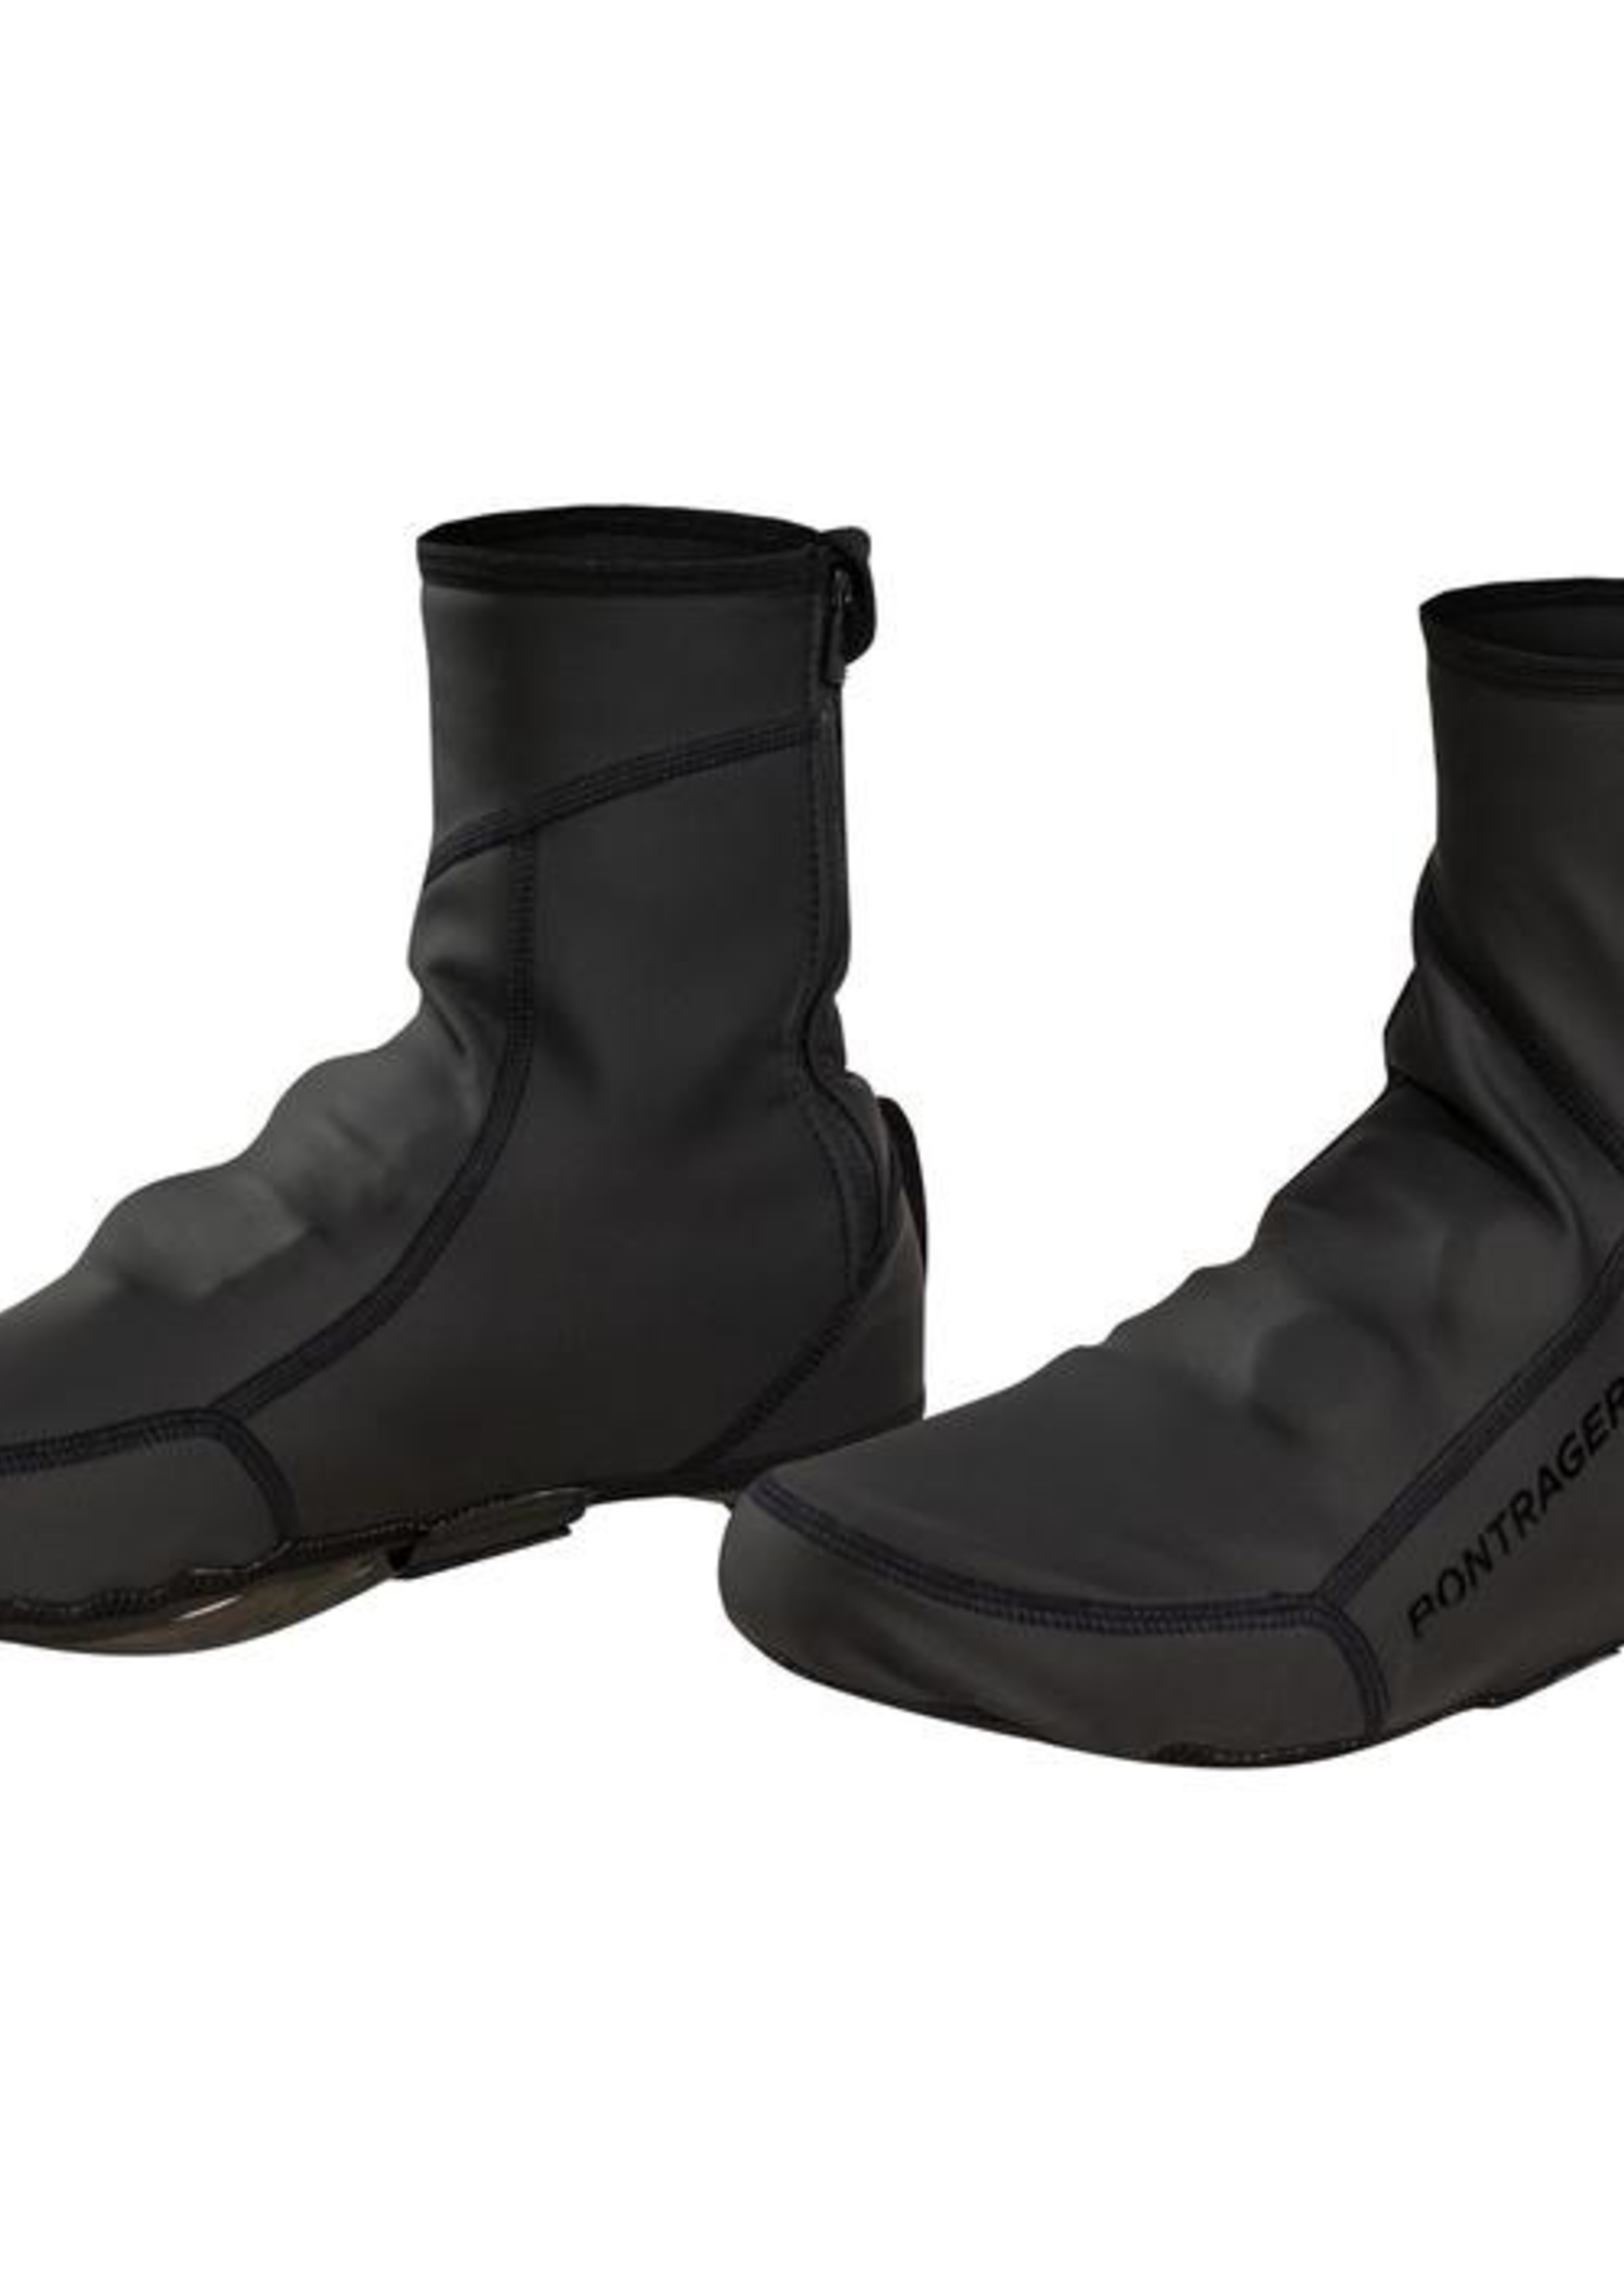 BONTRAGER - S1 SOFTSHELL BOOTIE